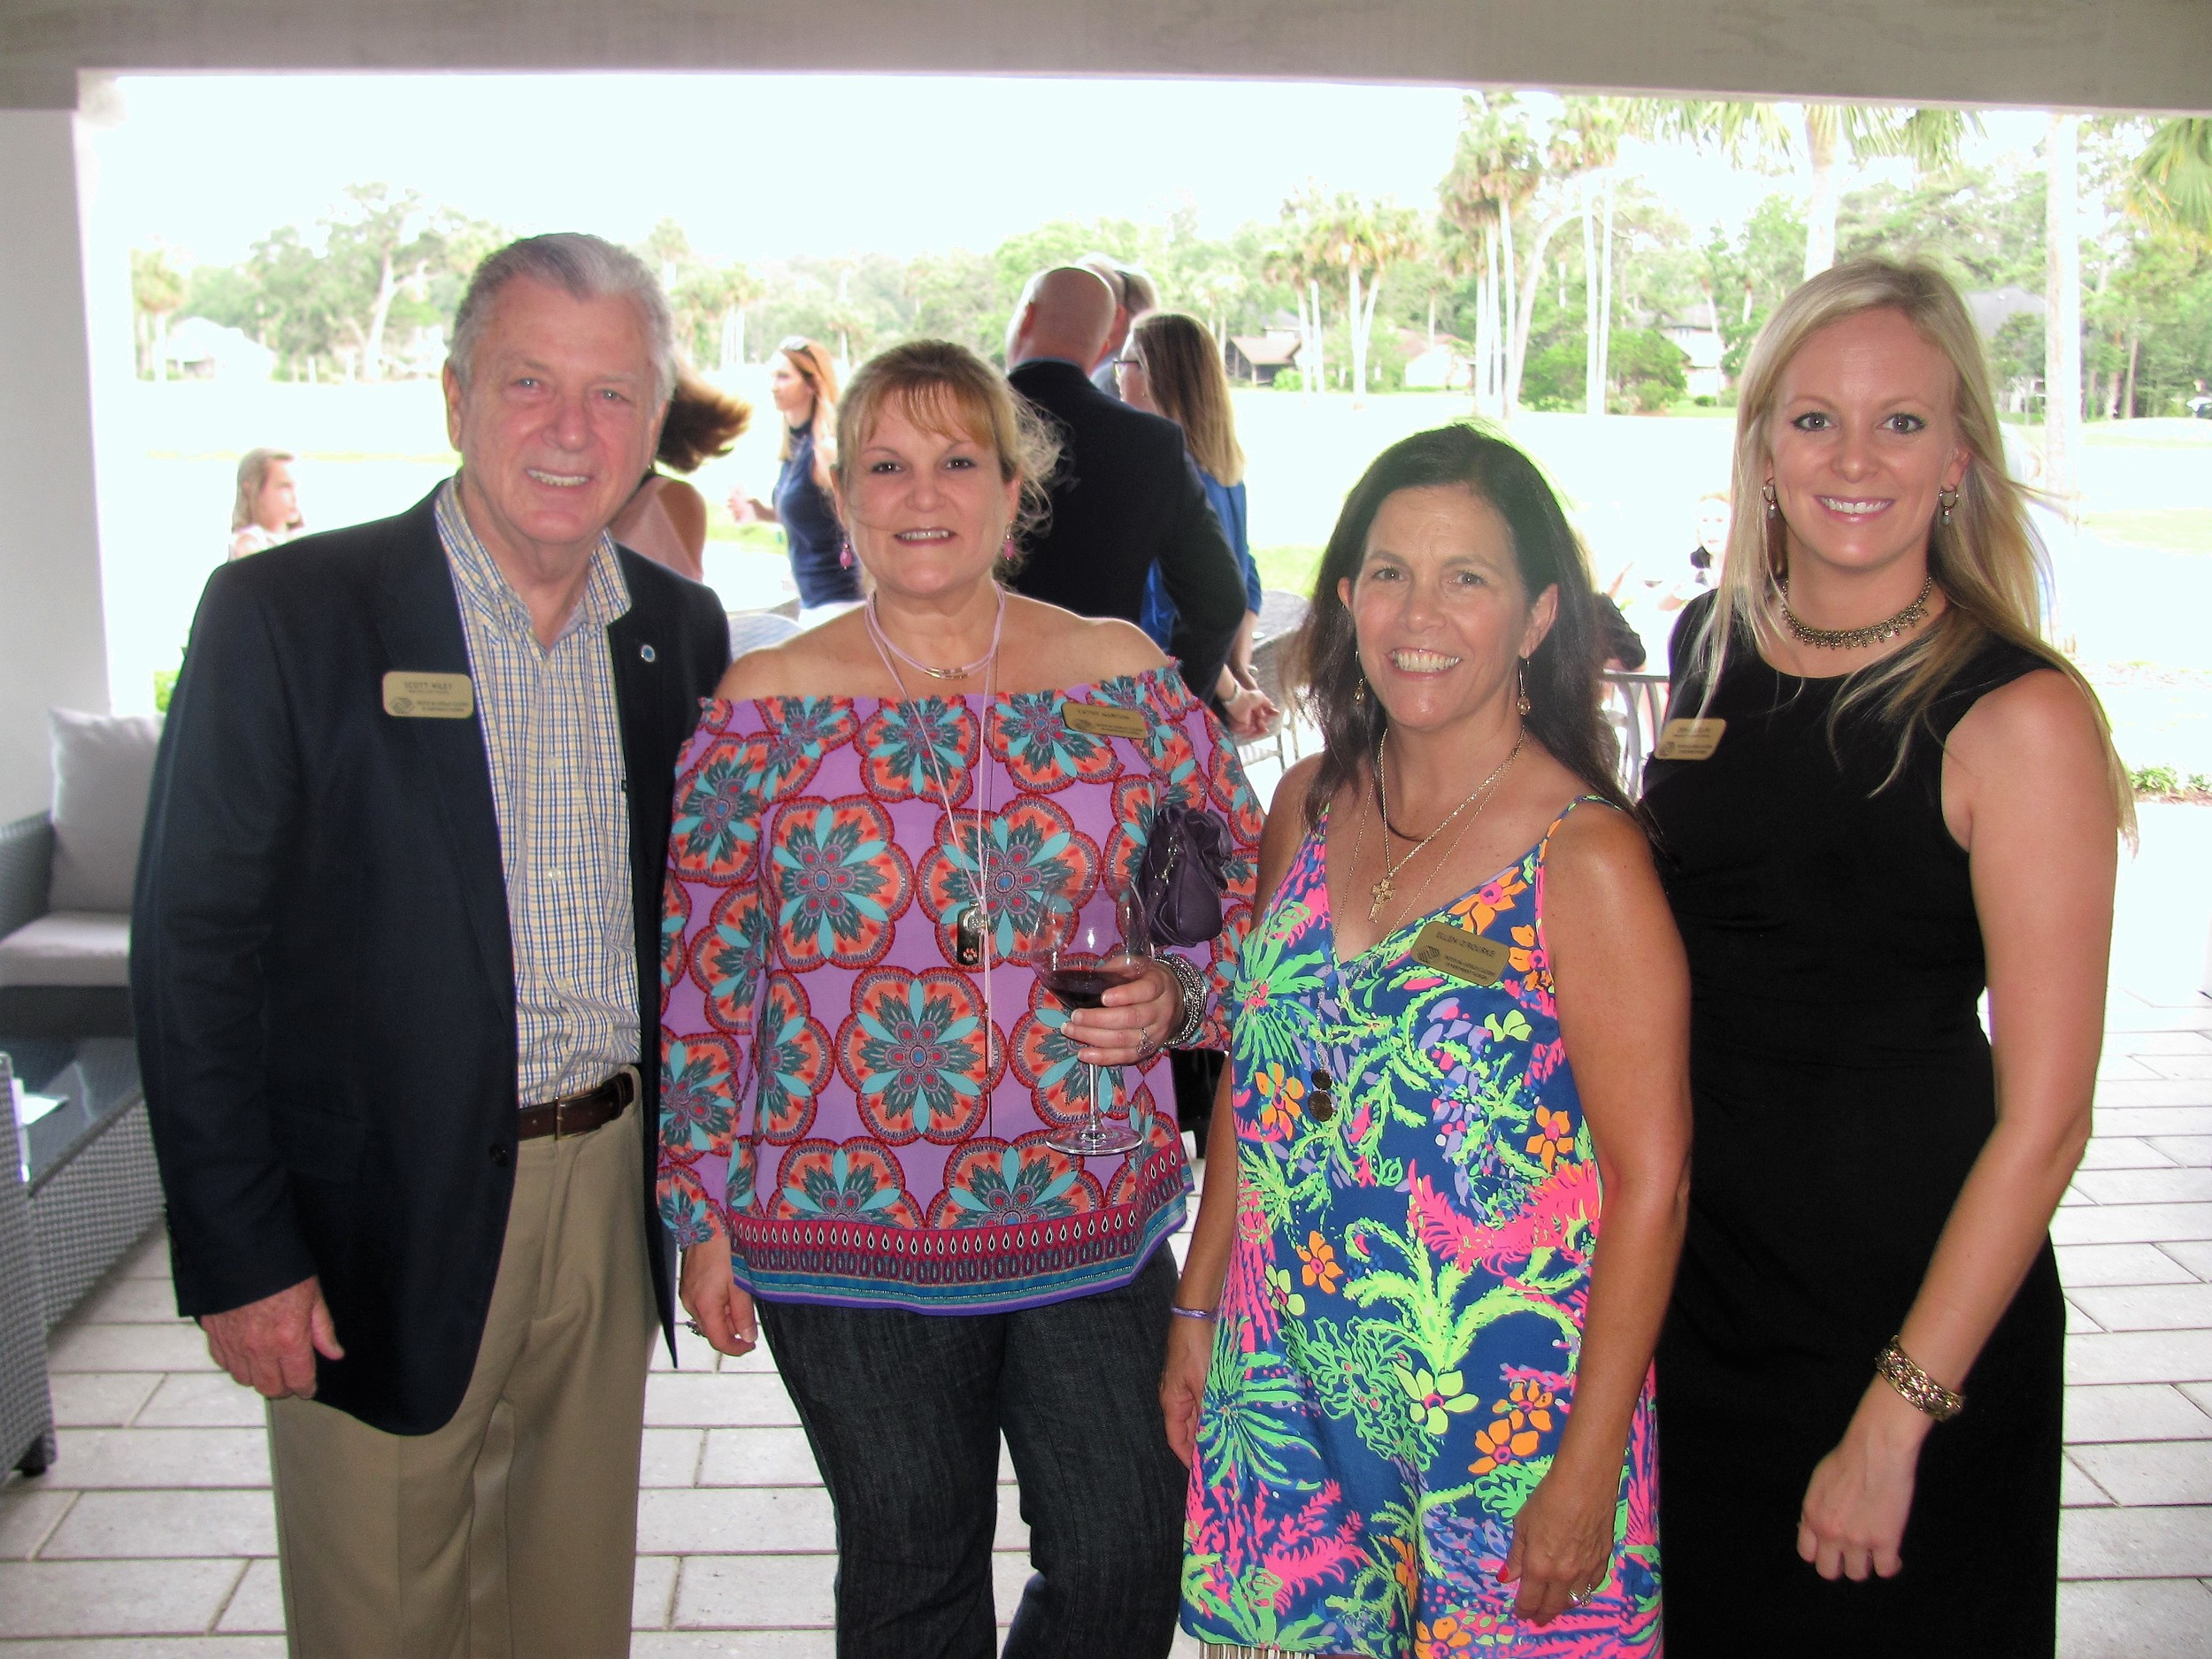 Scott Wiley, Cathy Marcum, Ellen O'Rourke and Erin Outlaw of the Beaches Boys and Girls Beaches Club